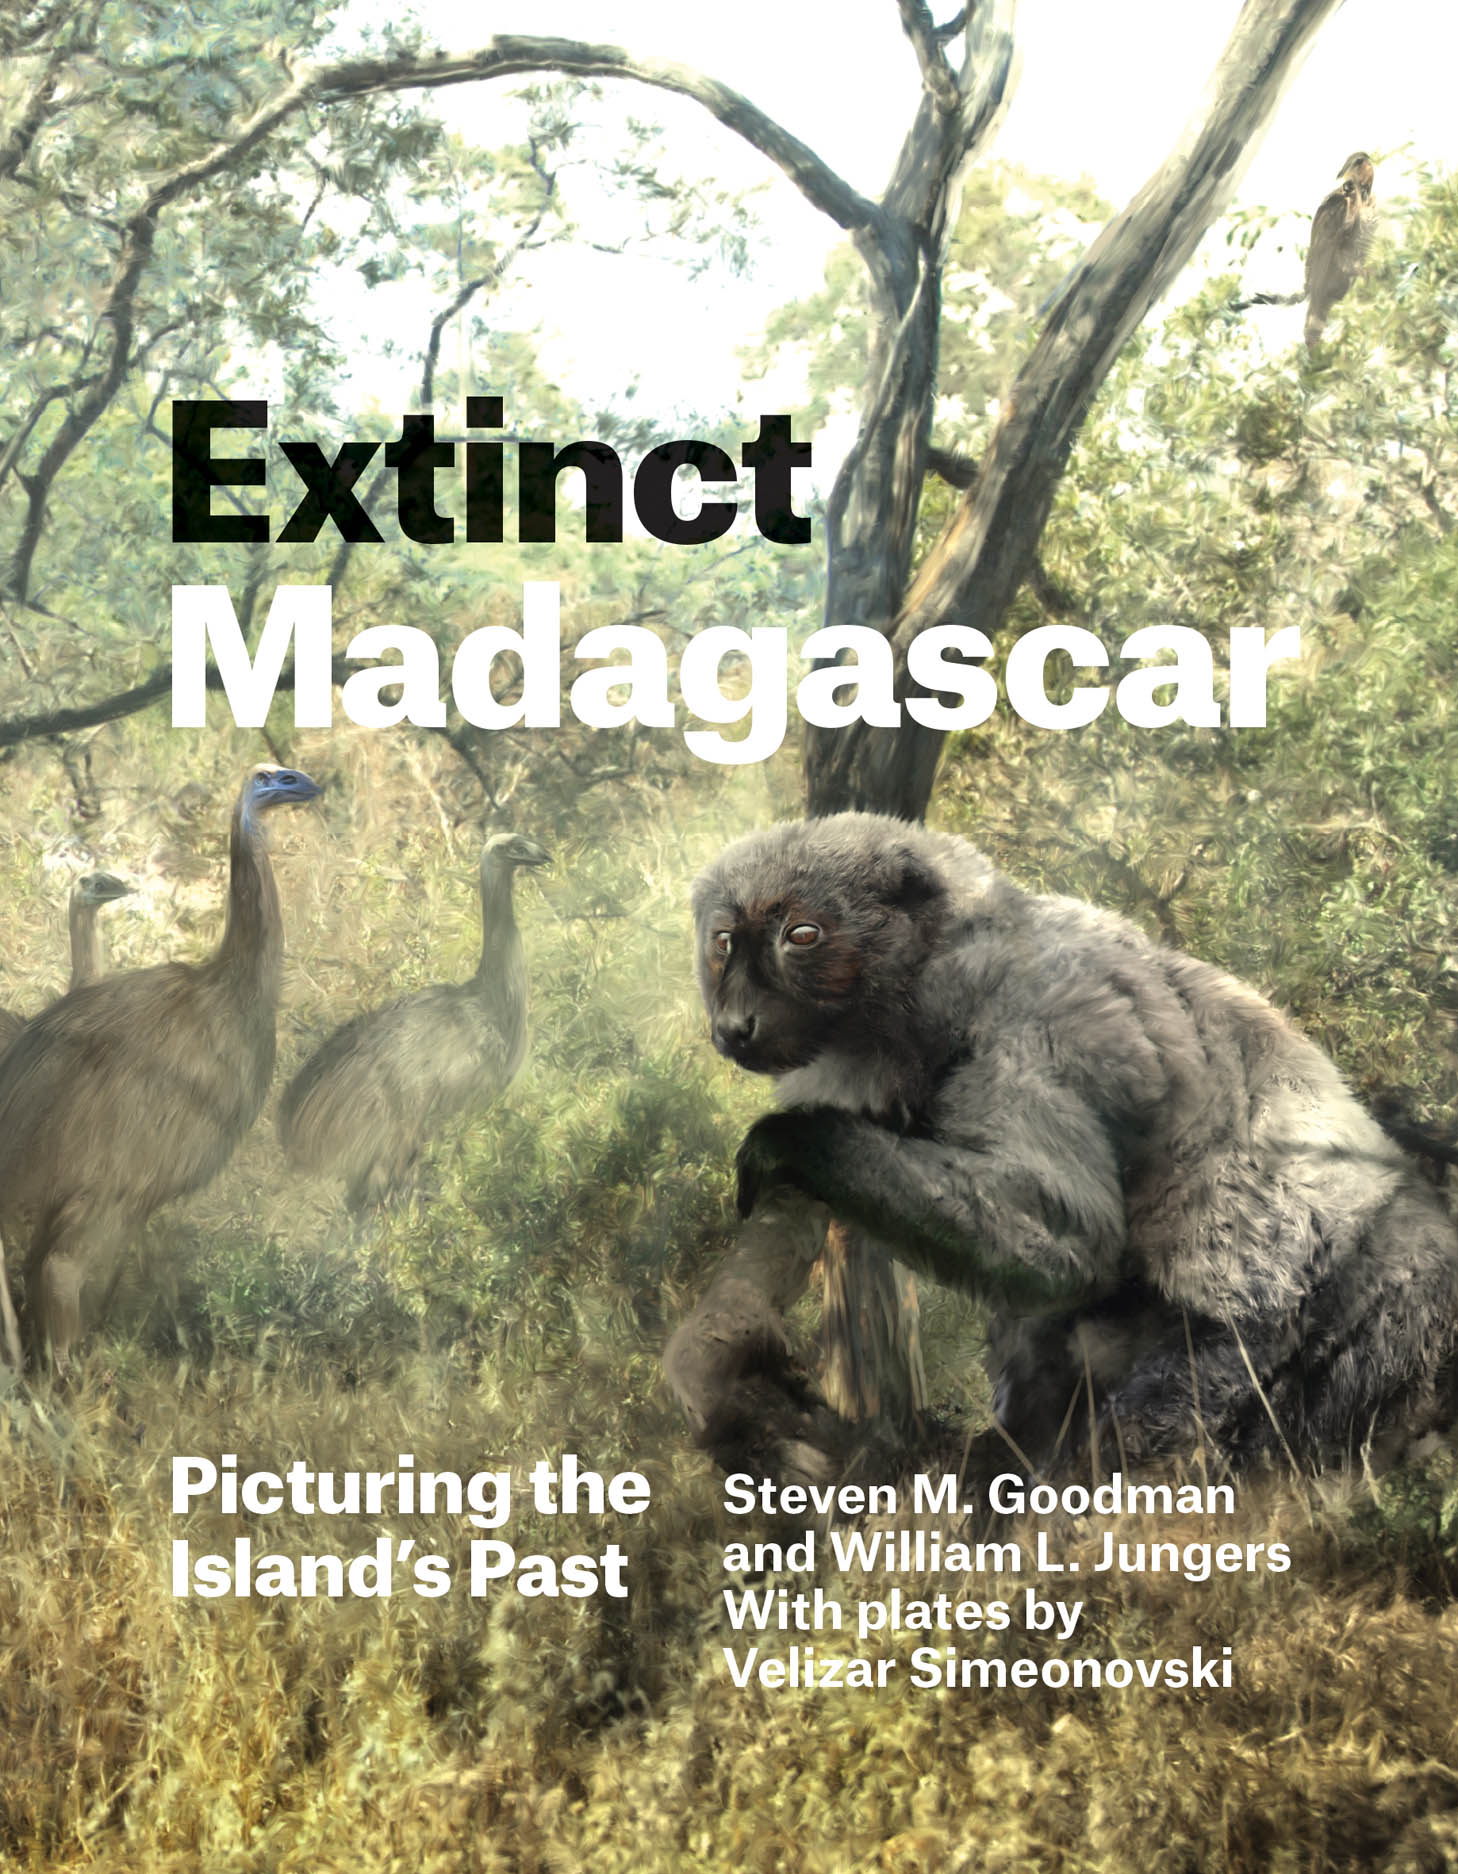 Extinct Madagascar: Picturing the Island's Past